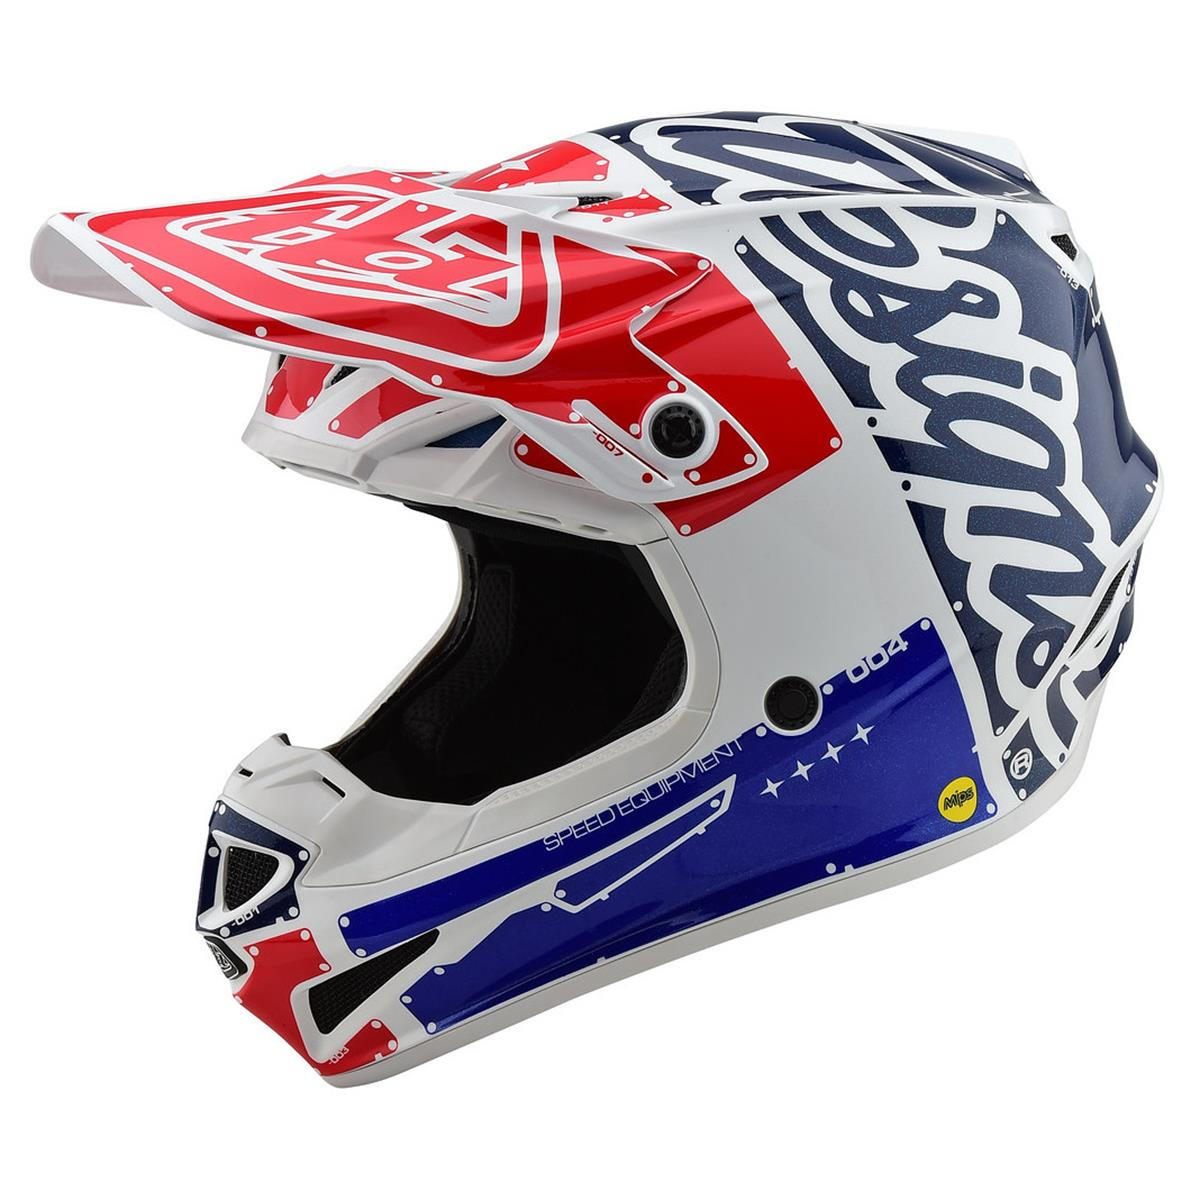 Troy Lee Designs Helm SE4 Polyacrylite MIPS Factory - Weiß/Blau